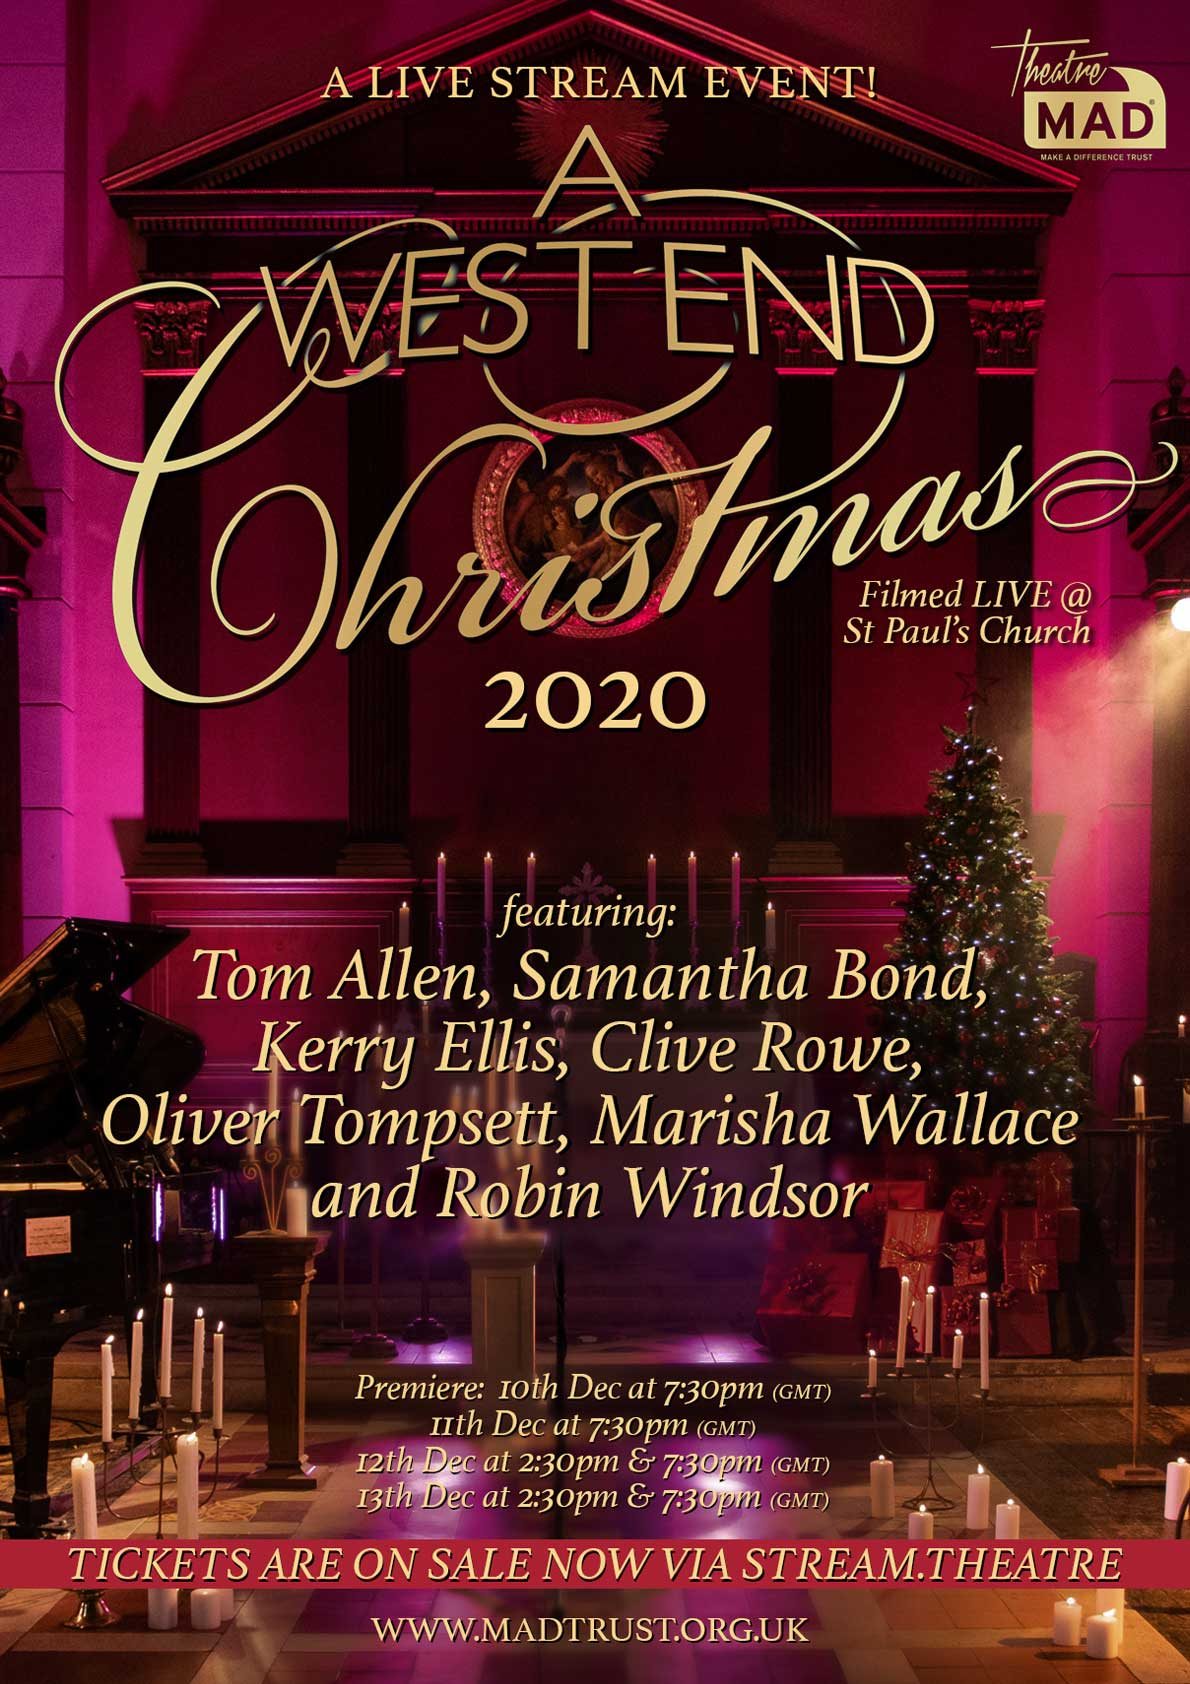 A West End Christmas 2020